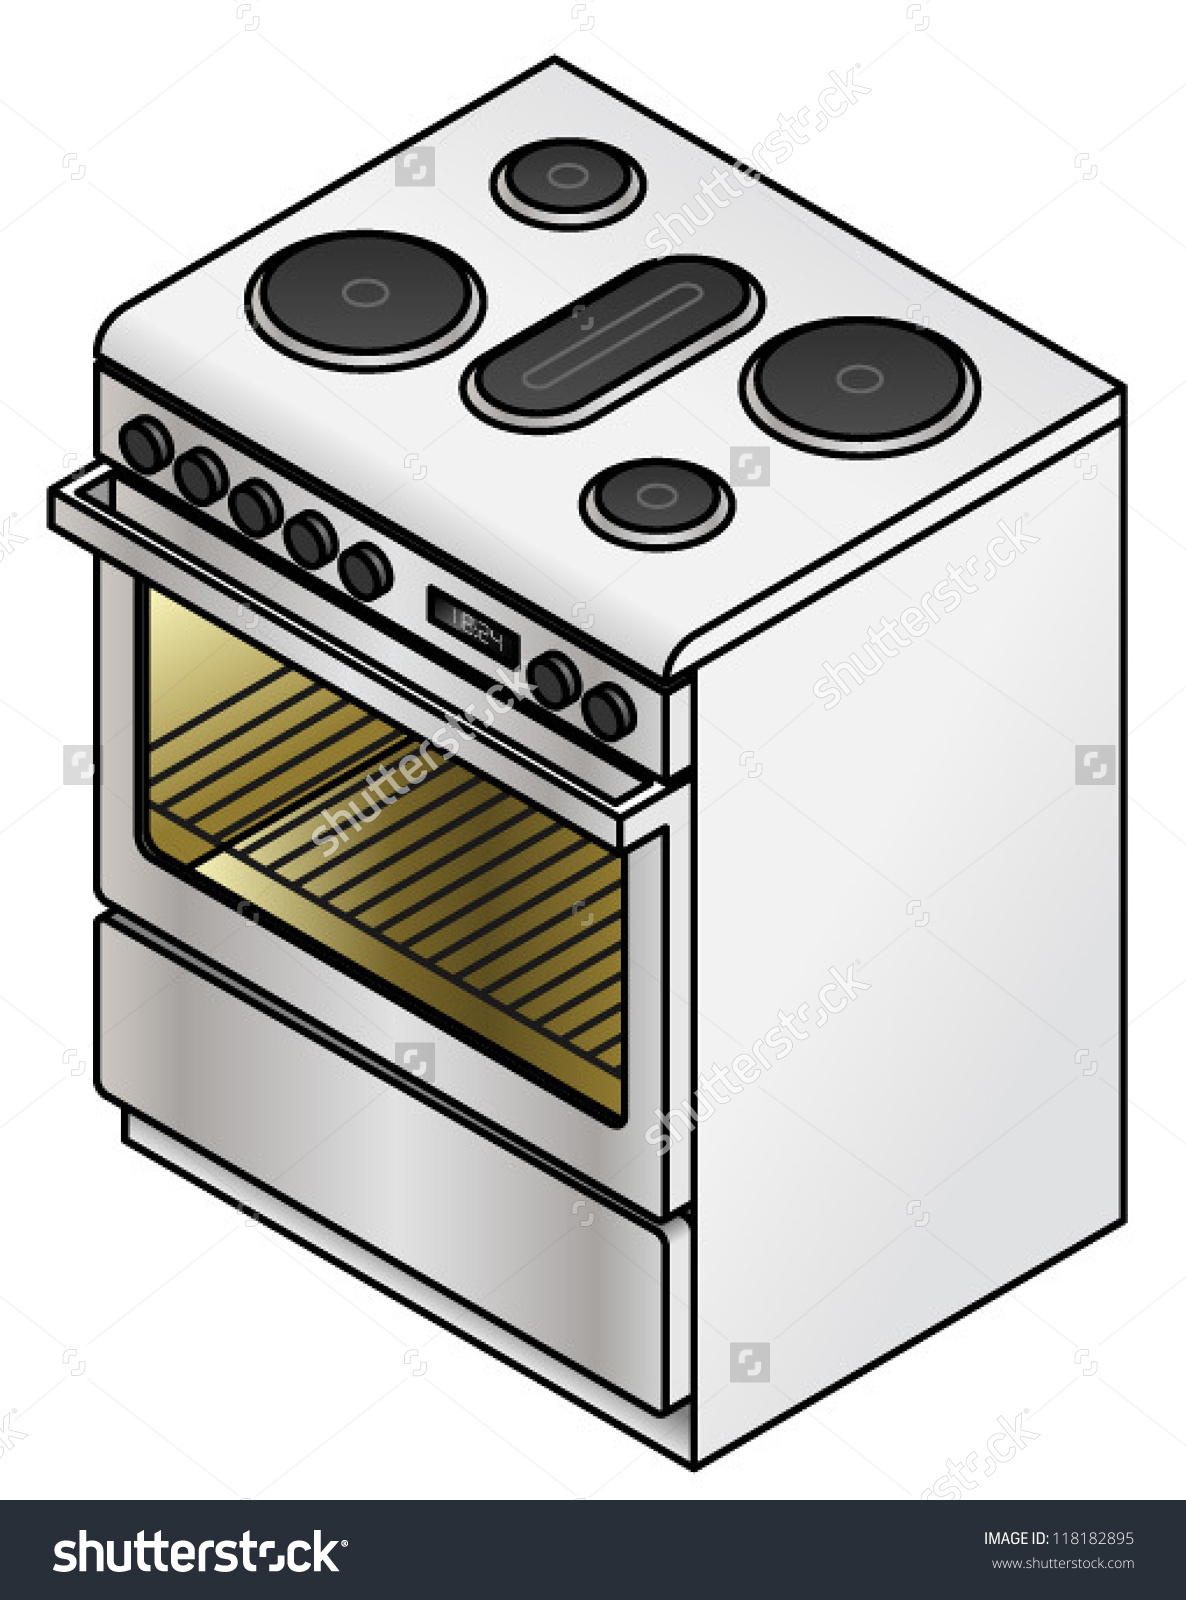 Electric stove clipart.